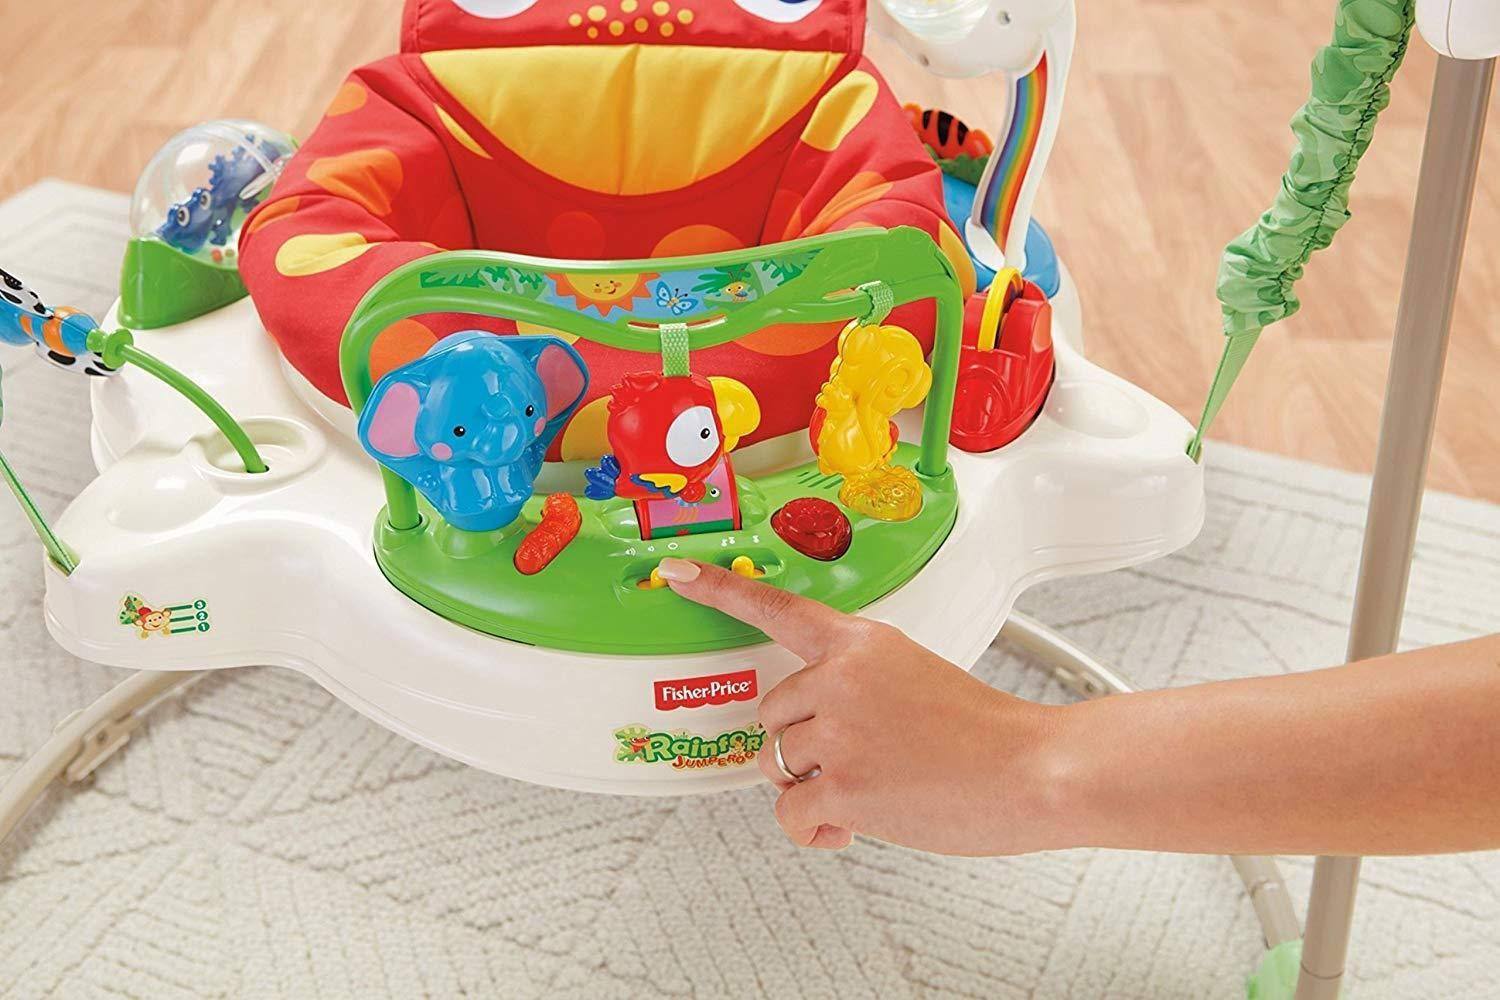 Details About Fisher Price Rainforest Jumperoo Baby Jumper Walker Bouncer Activity Seat 3daysh Fisher Price Rainforest Jumperoo Baby Bouncer Fisher Price Jumperoo